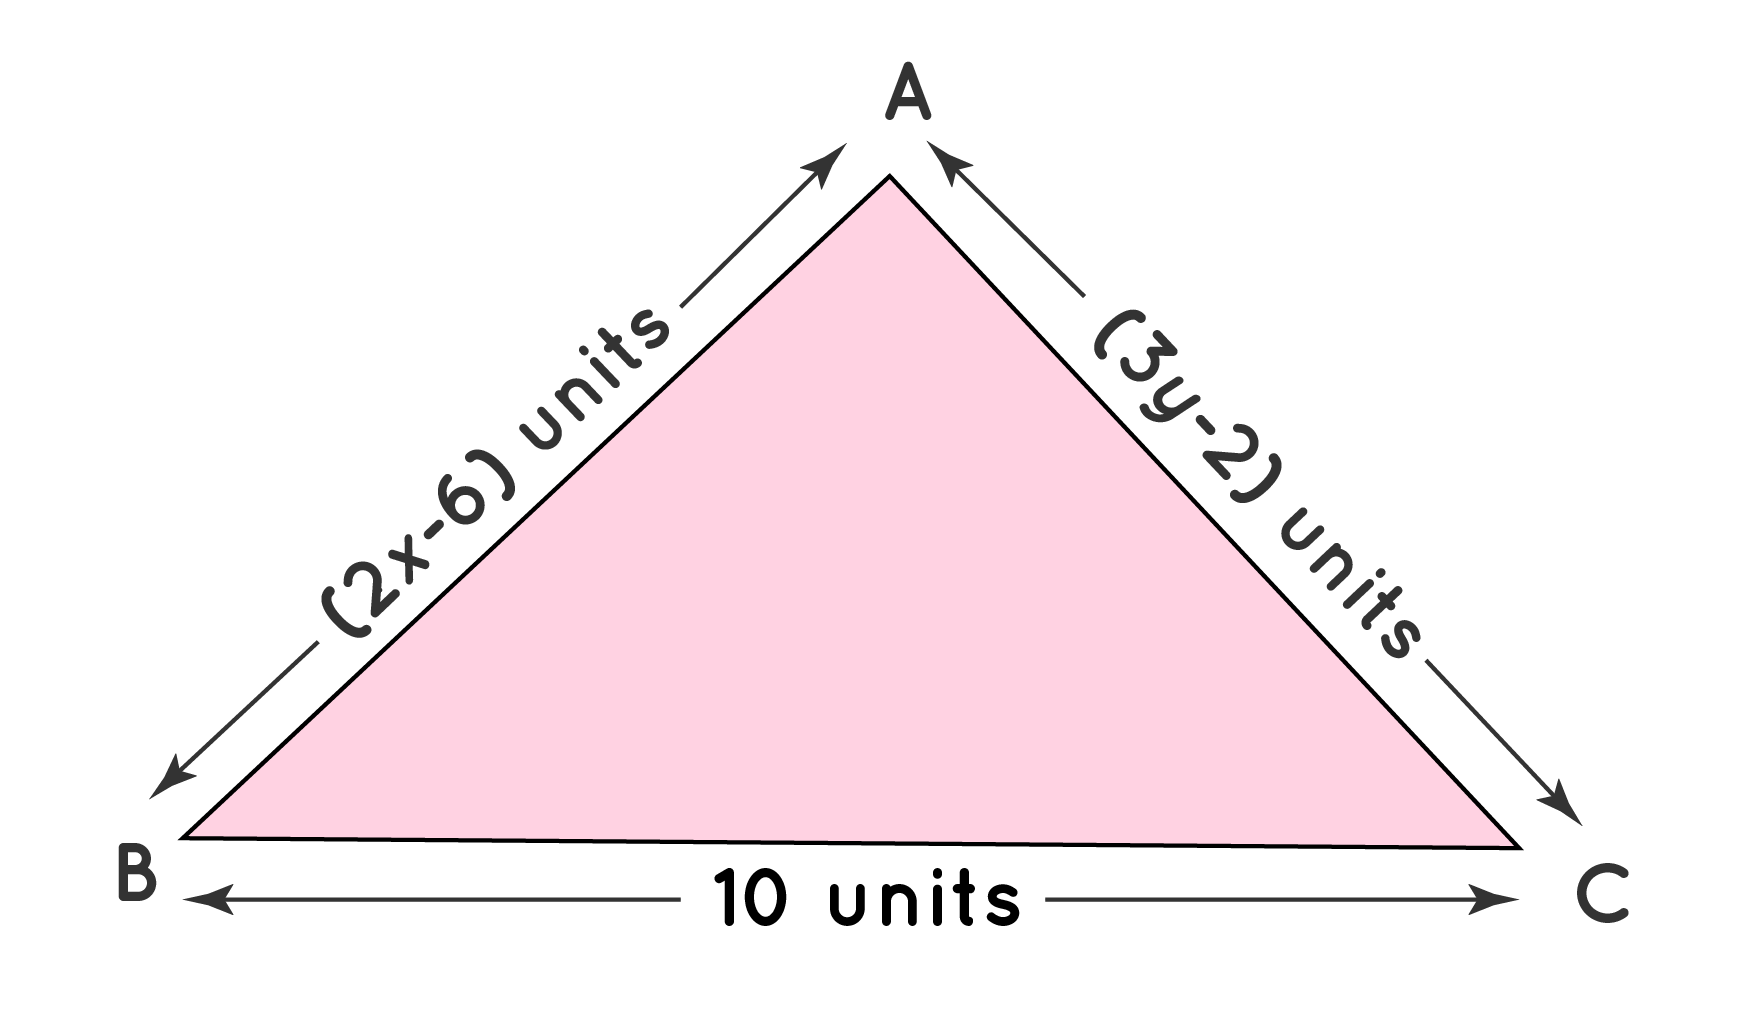 Dimensionsof Equilateral Triangle